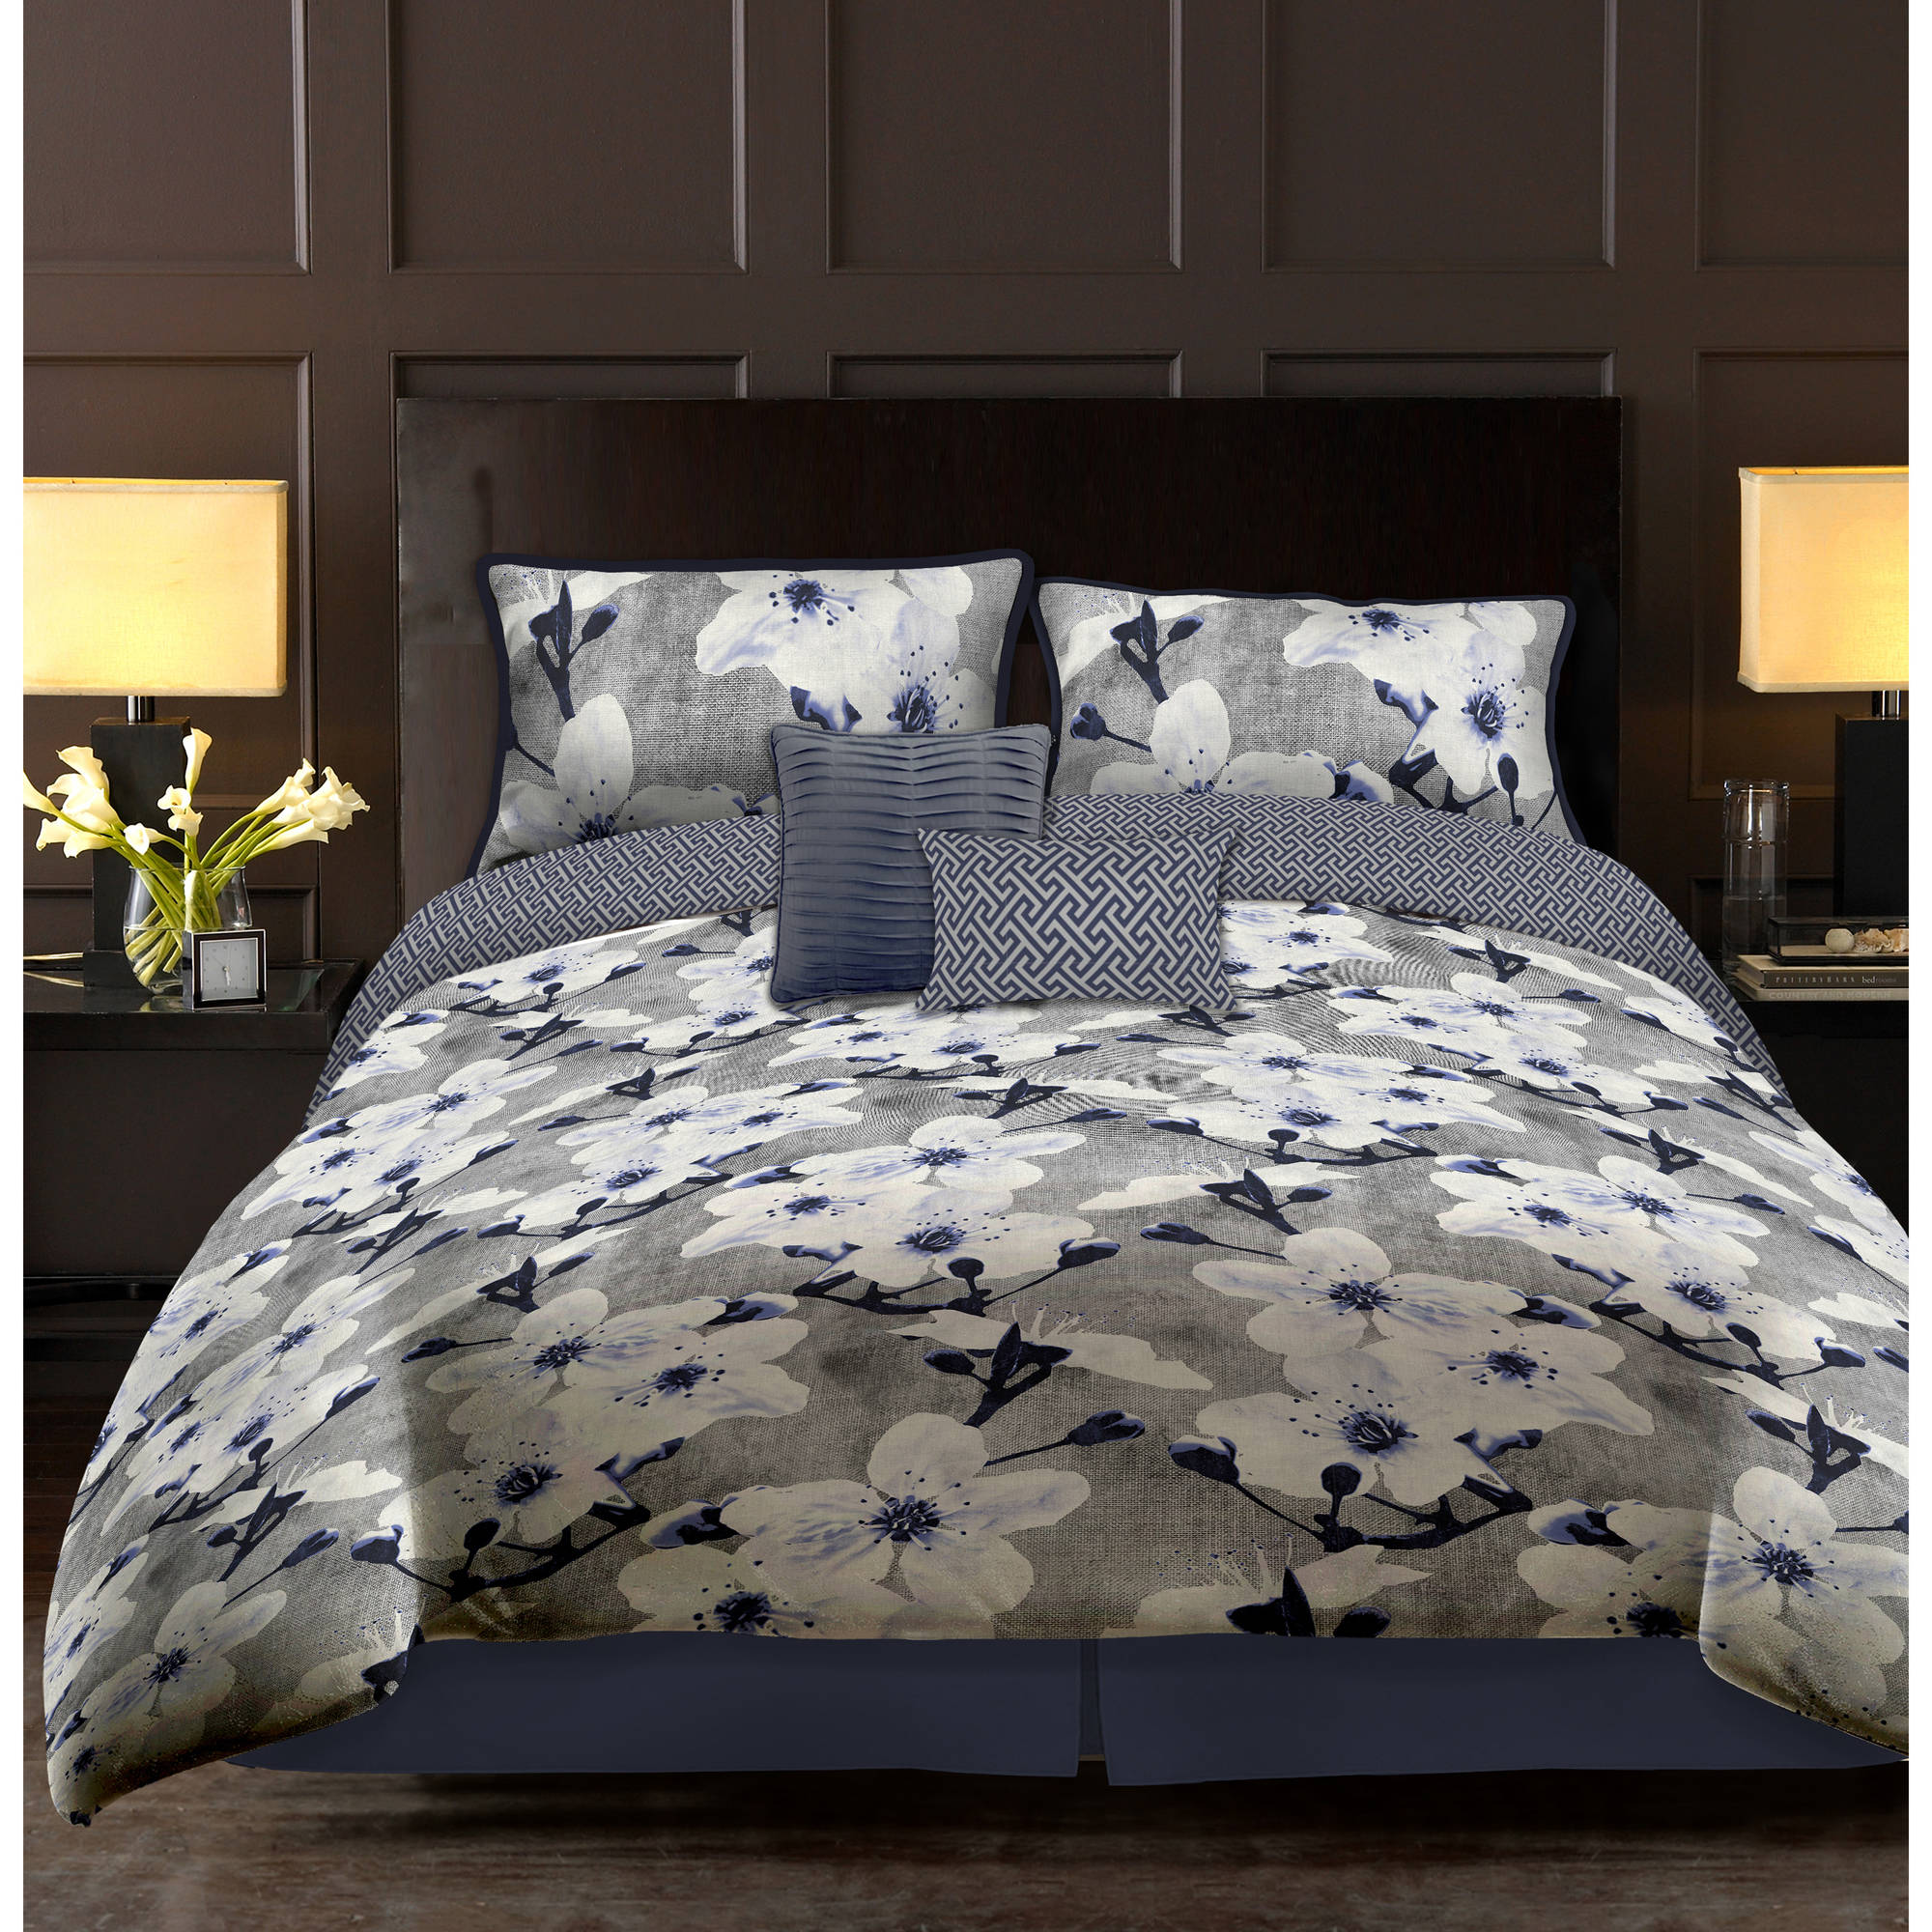 Casa Bell Ville 5-Piece Bedding Comforter Set